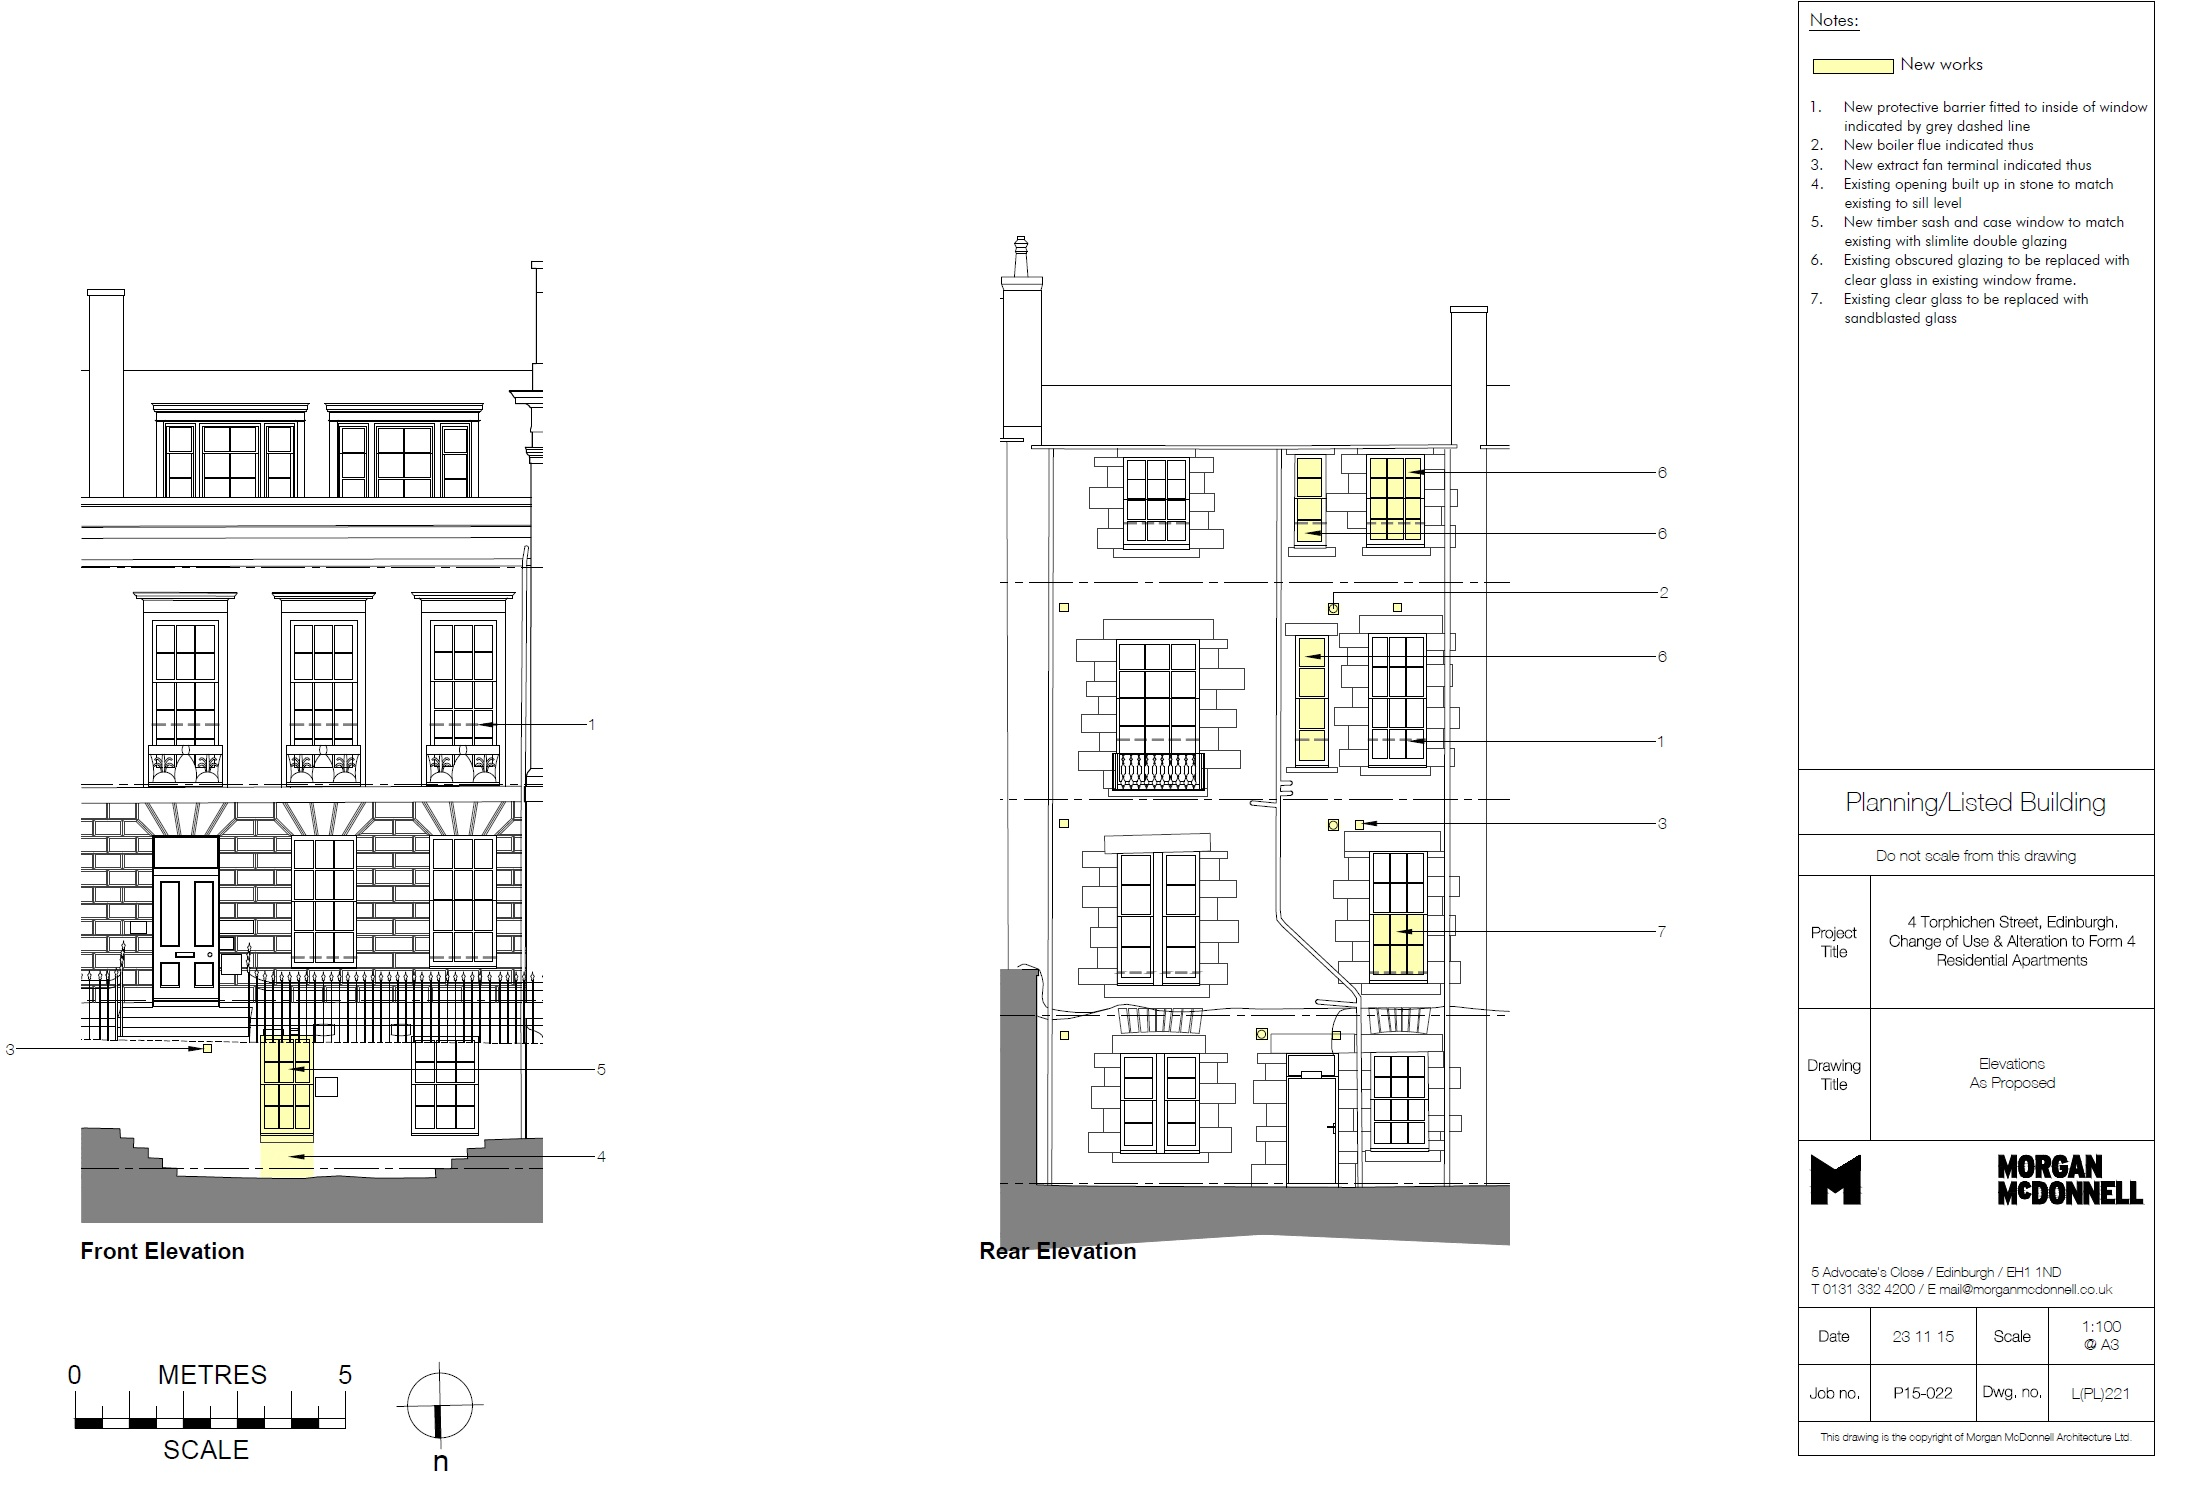 160513 4 Torphichen Street Elevations